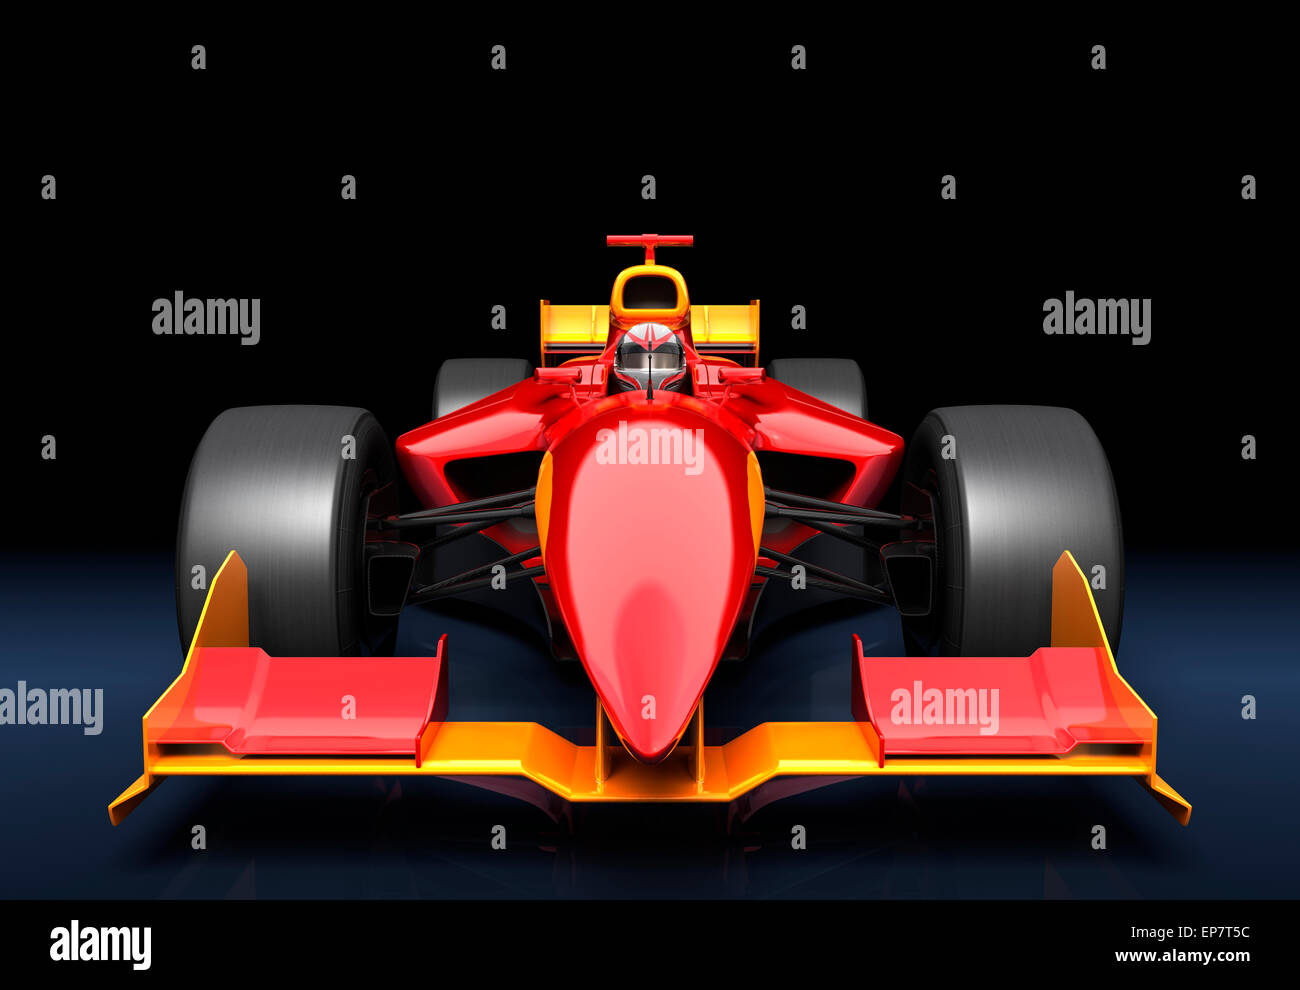 Generic red race car on the black background - Stock Image